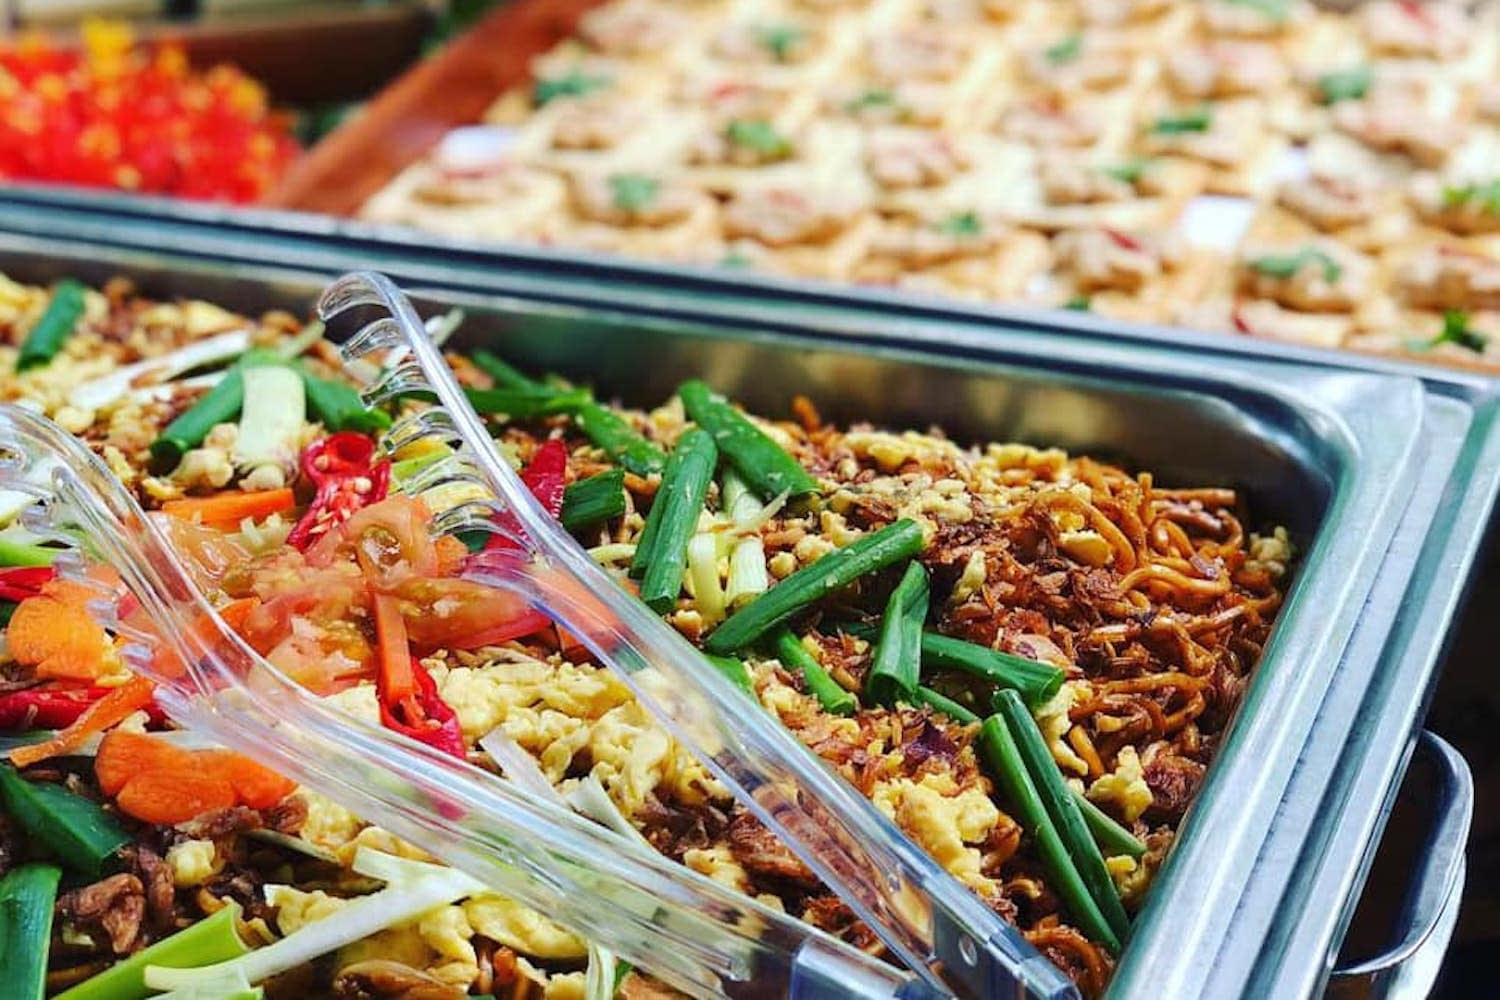 word events and catering